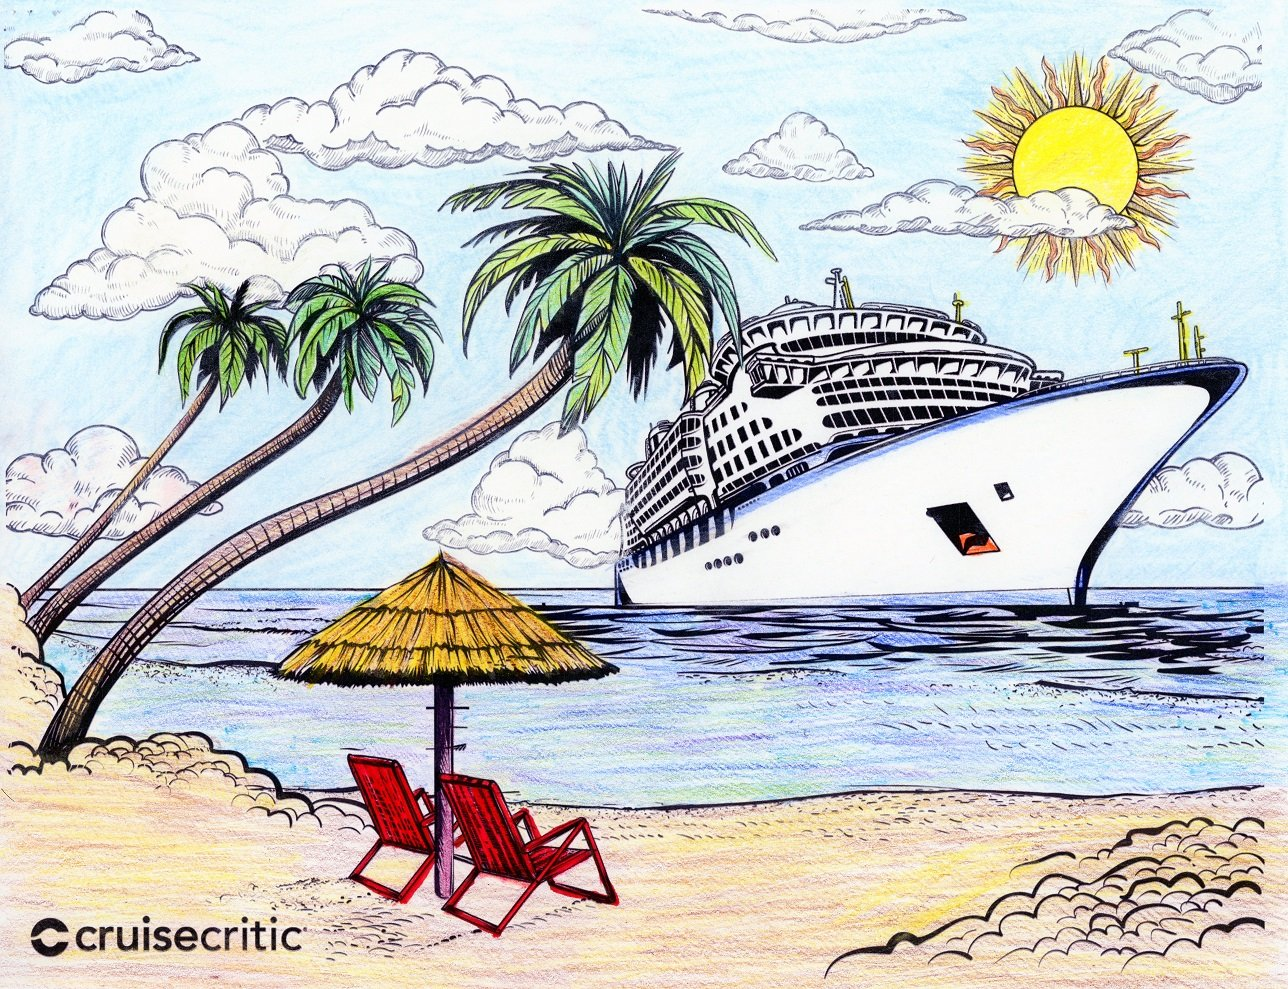 Cruise ship by gg.jpg